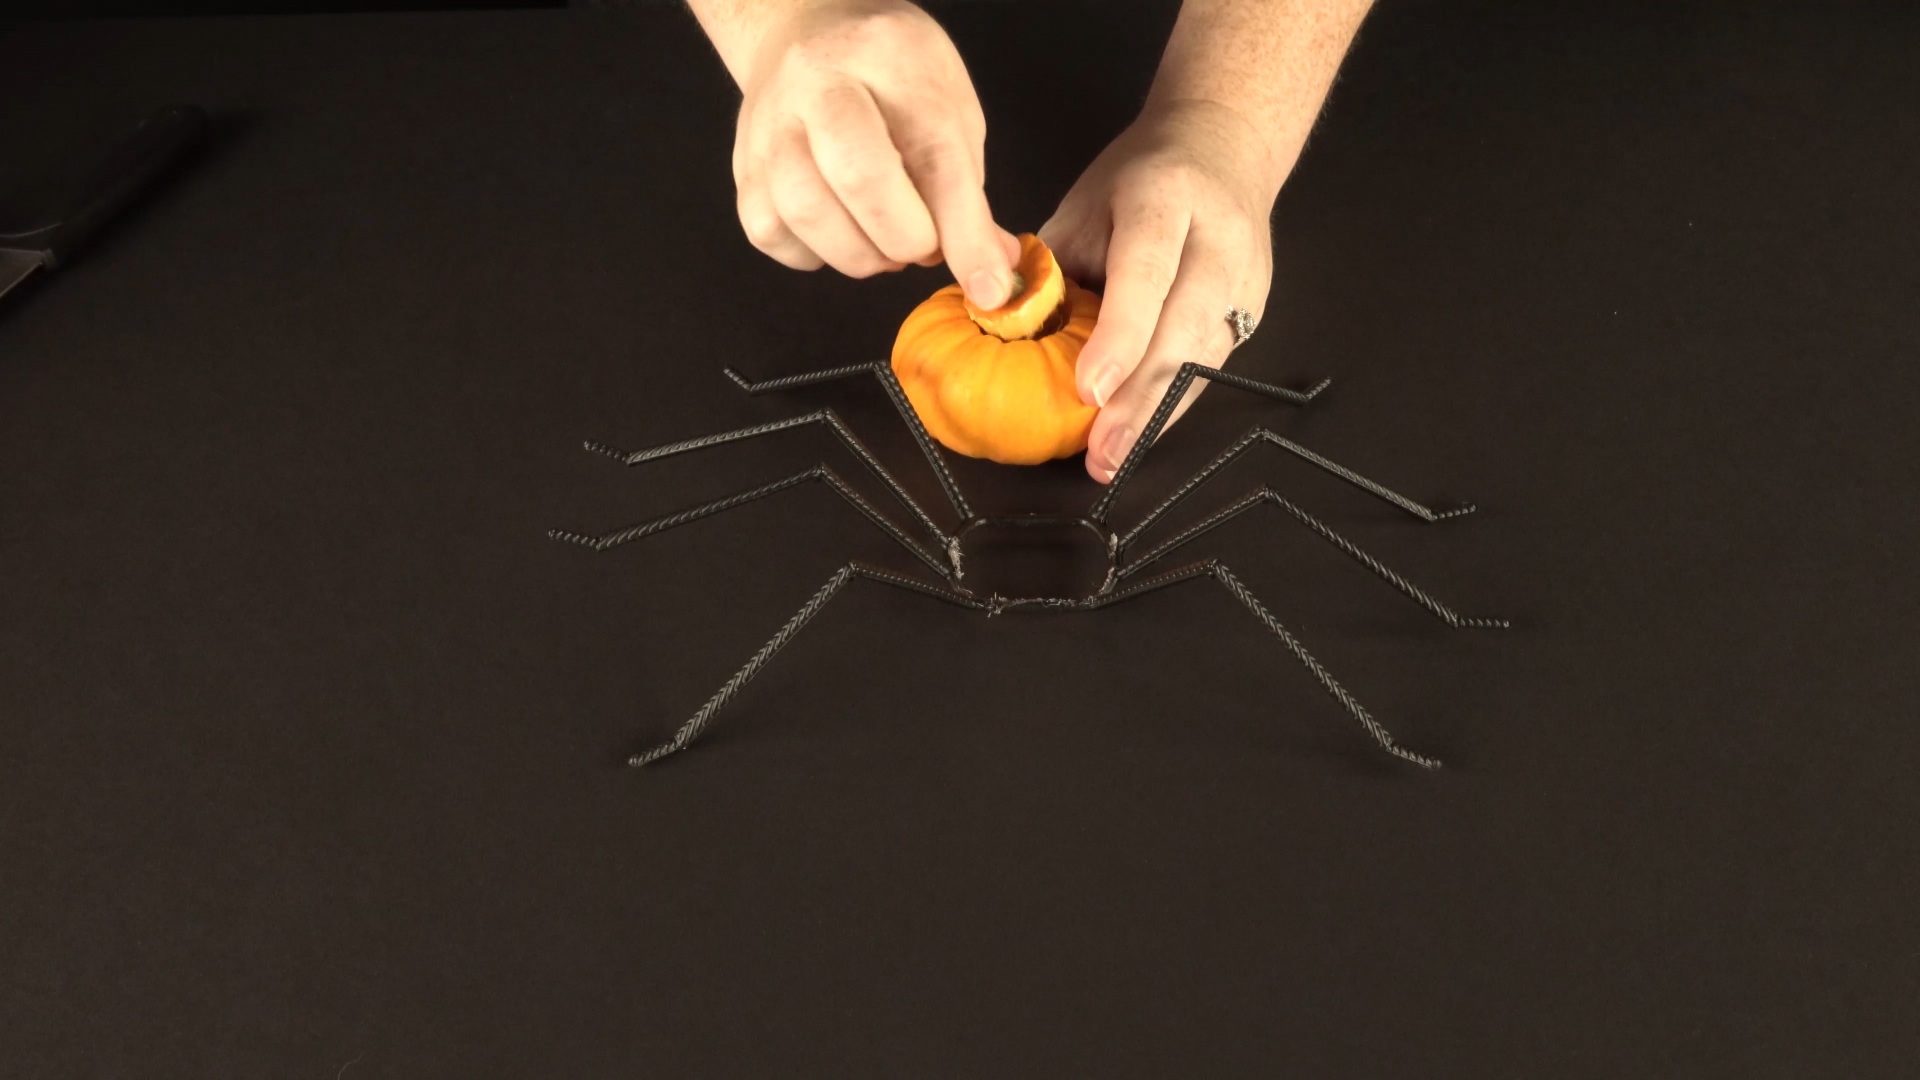 Halloween crafts with color-changing led tea lights - spider step 2